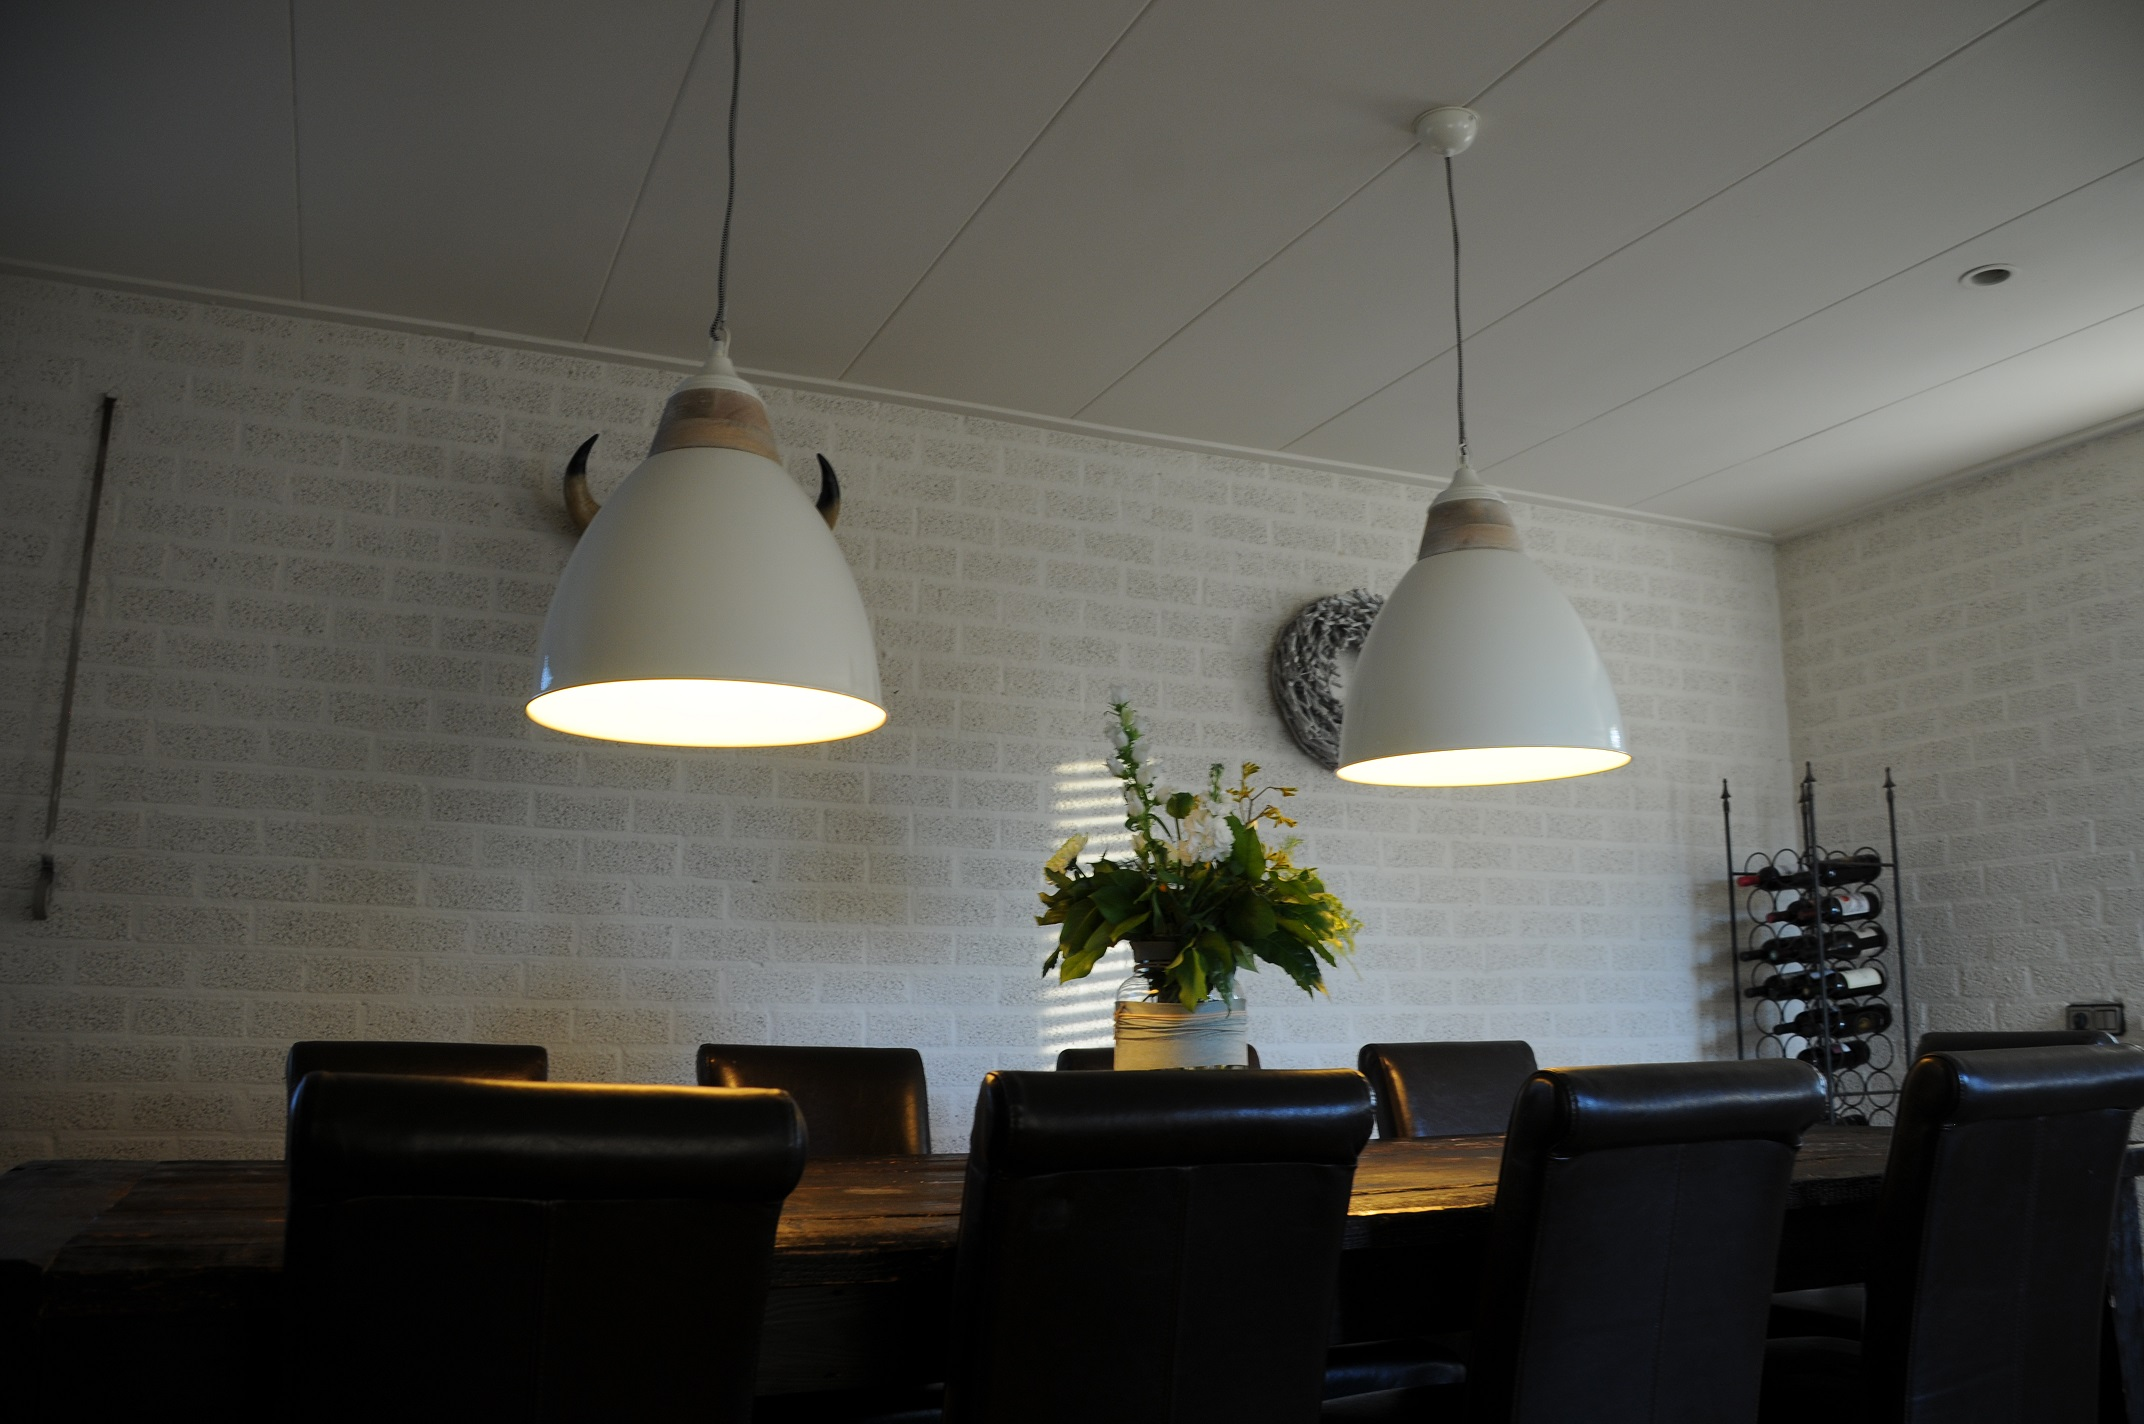 By Boo Lampen : Prachtige by boo hanglamp metaal creme wit hout afzetting